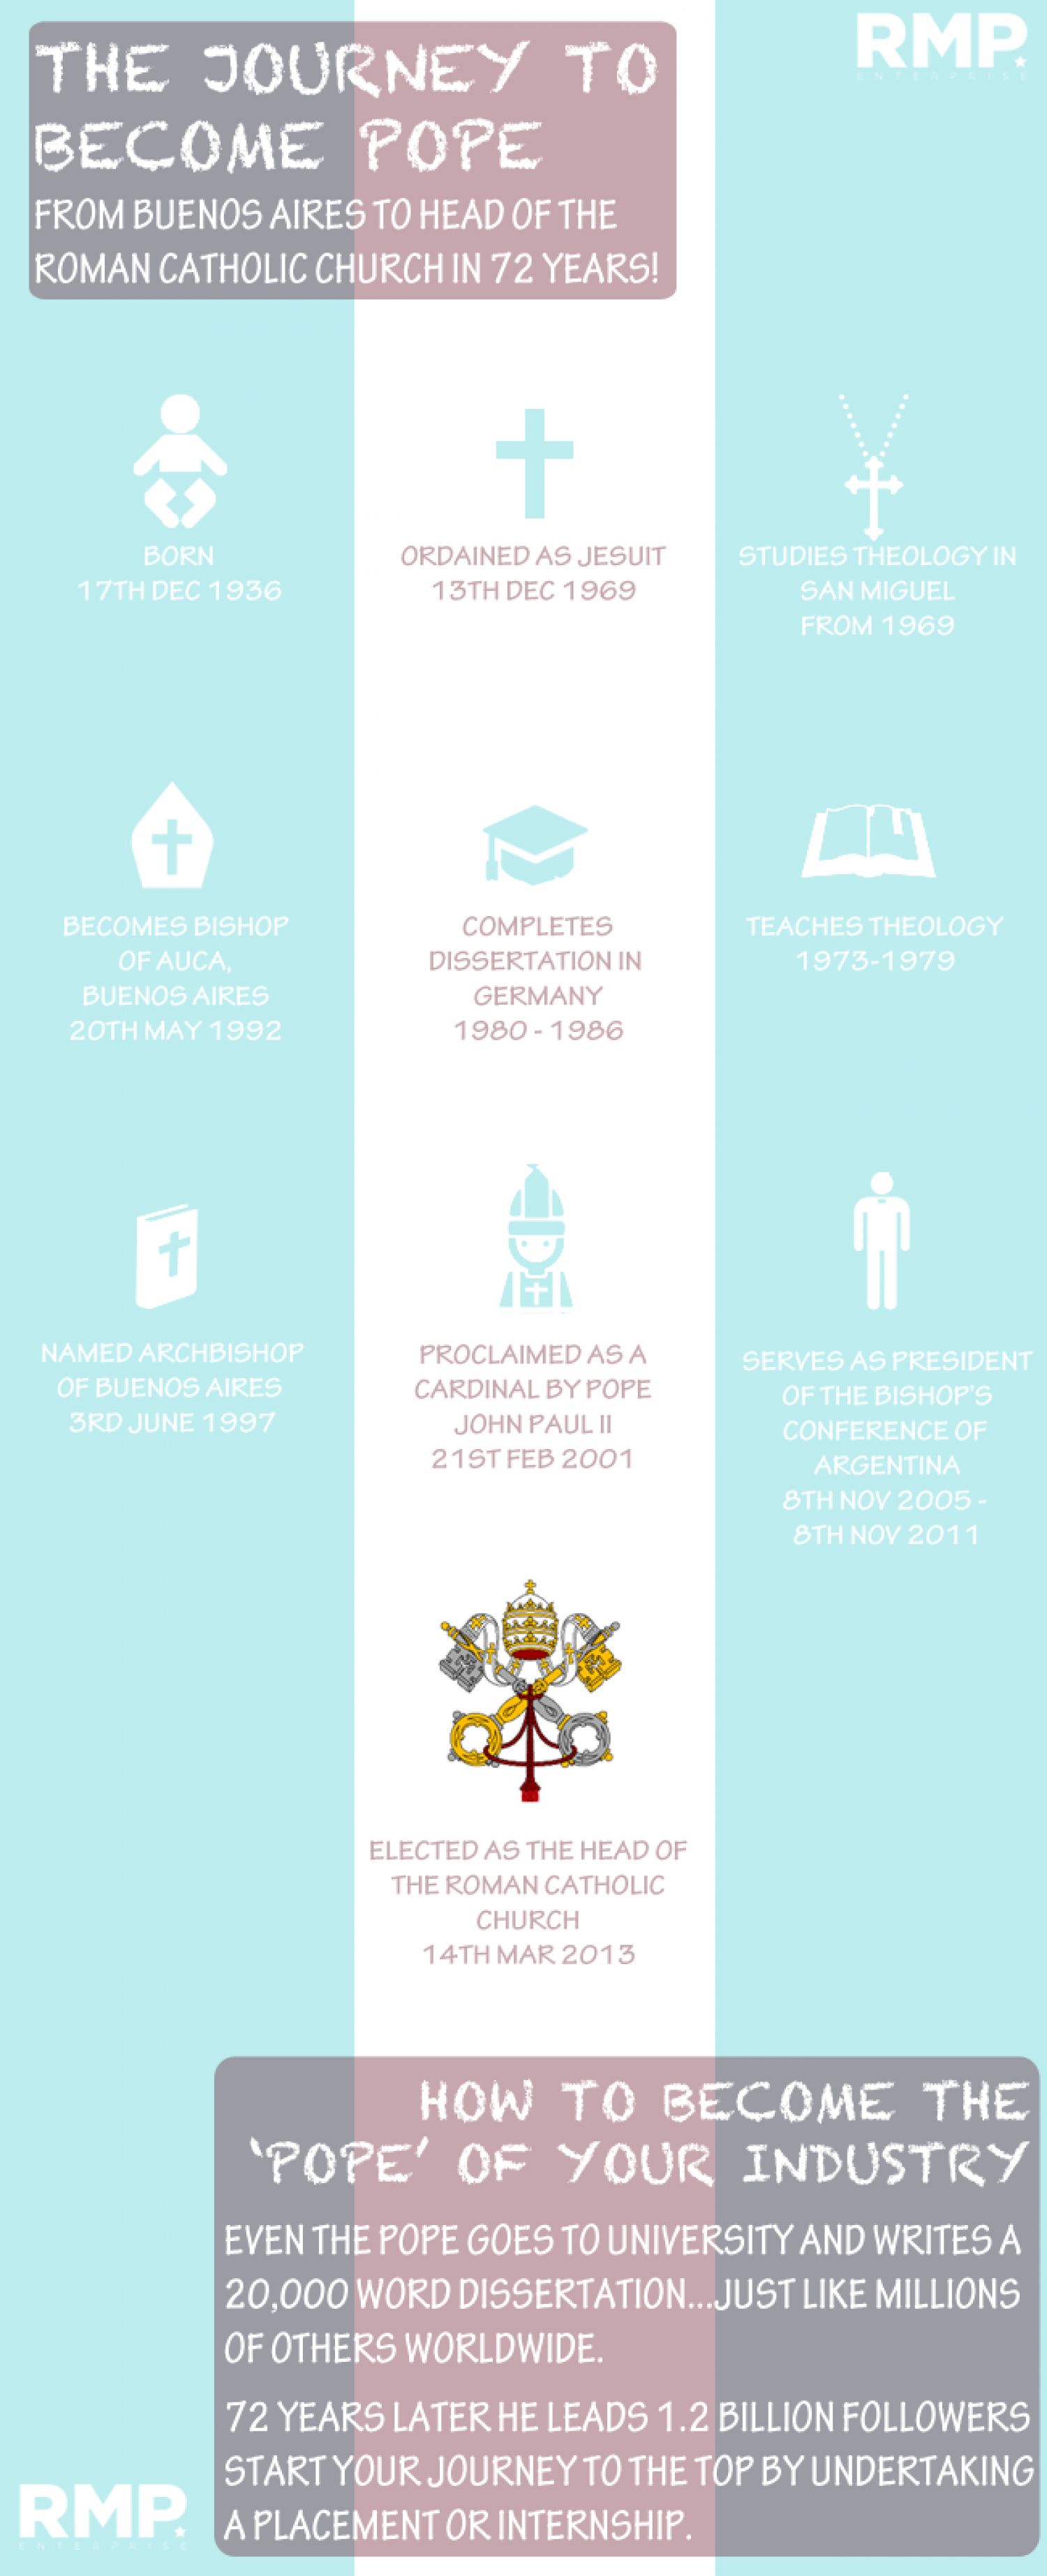 Becoming the Pope Infographic